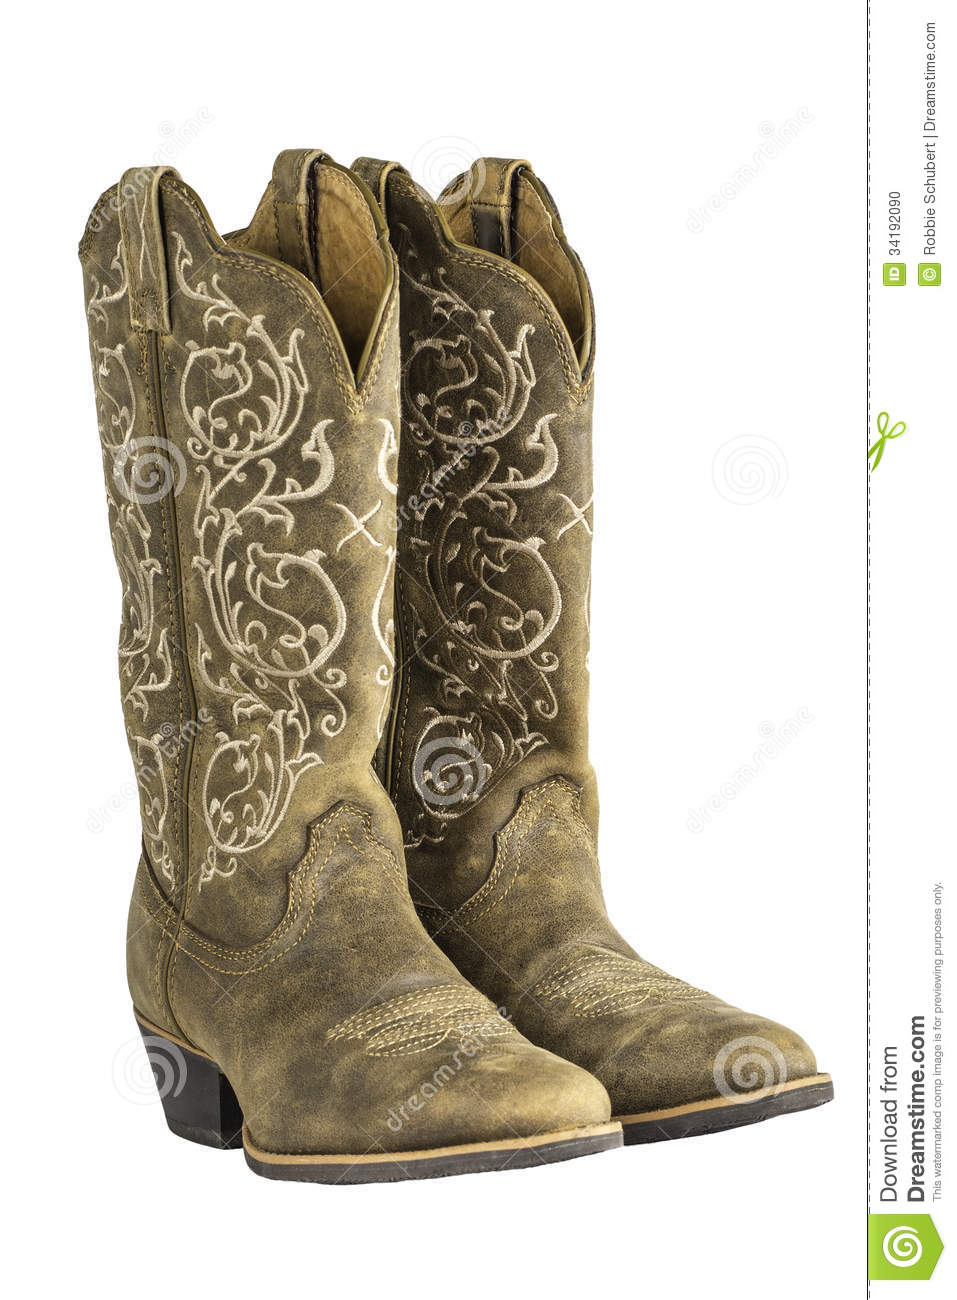 81d3e5578c7 A pair of brown ladies coyboy western boots isolated on a white background.